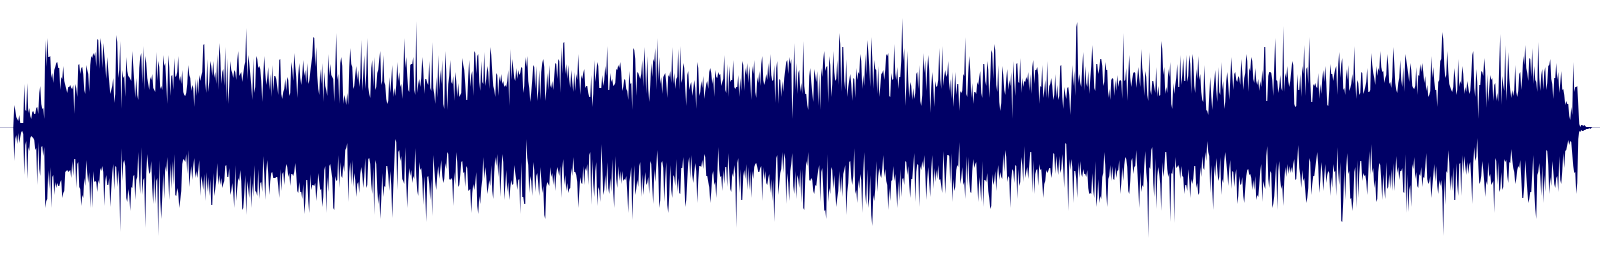 waveform of track #159213